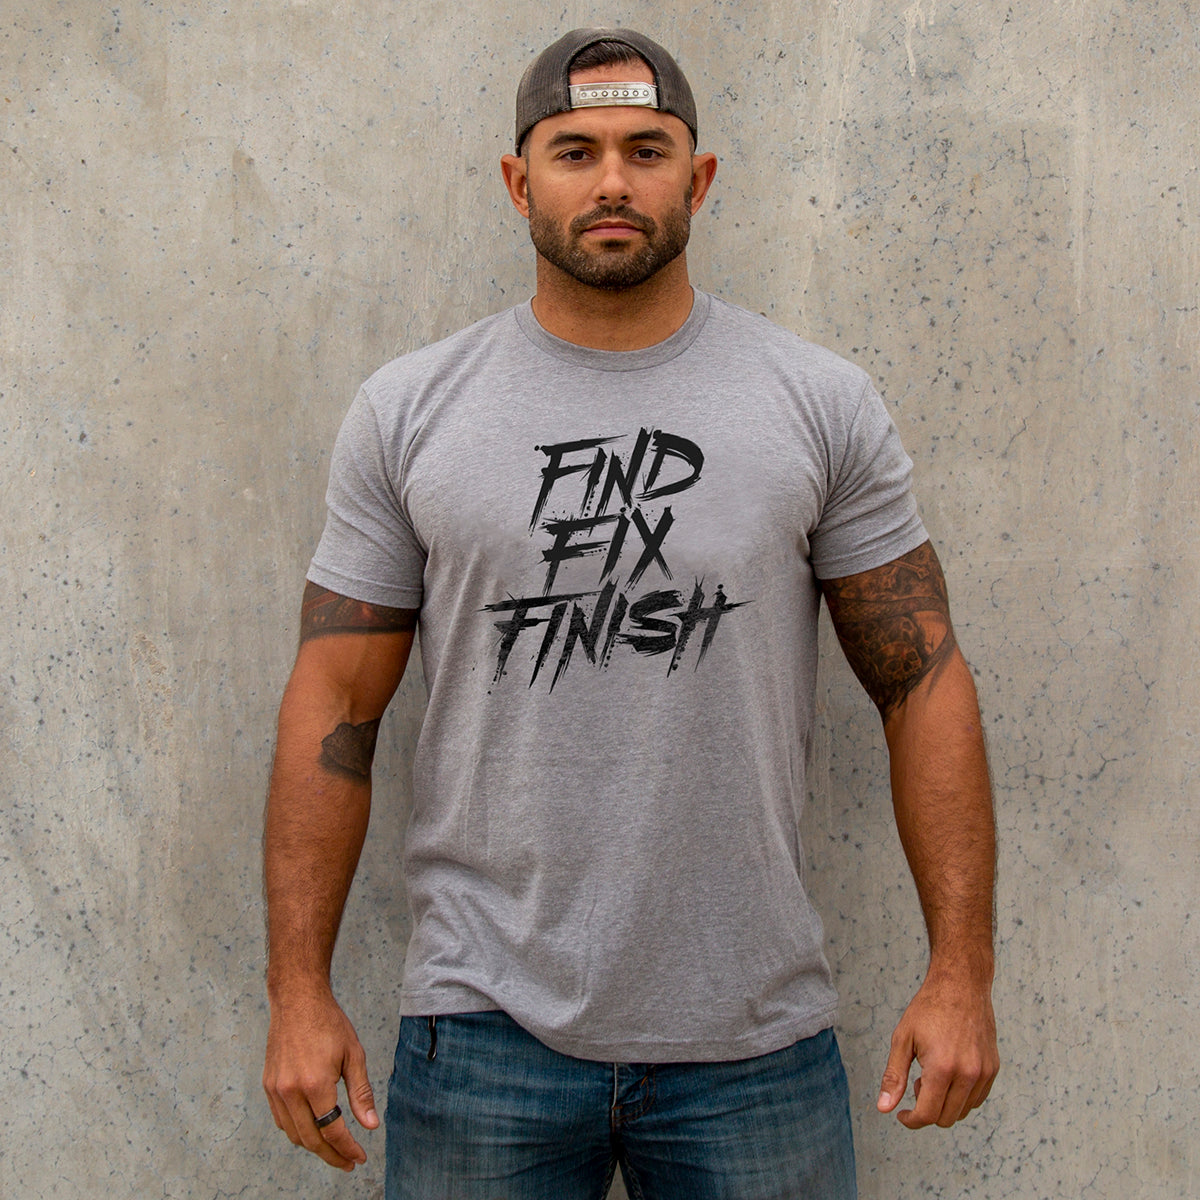 Find Fix Finish - Pipe Hitters Union